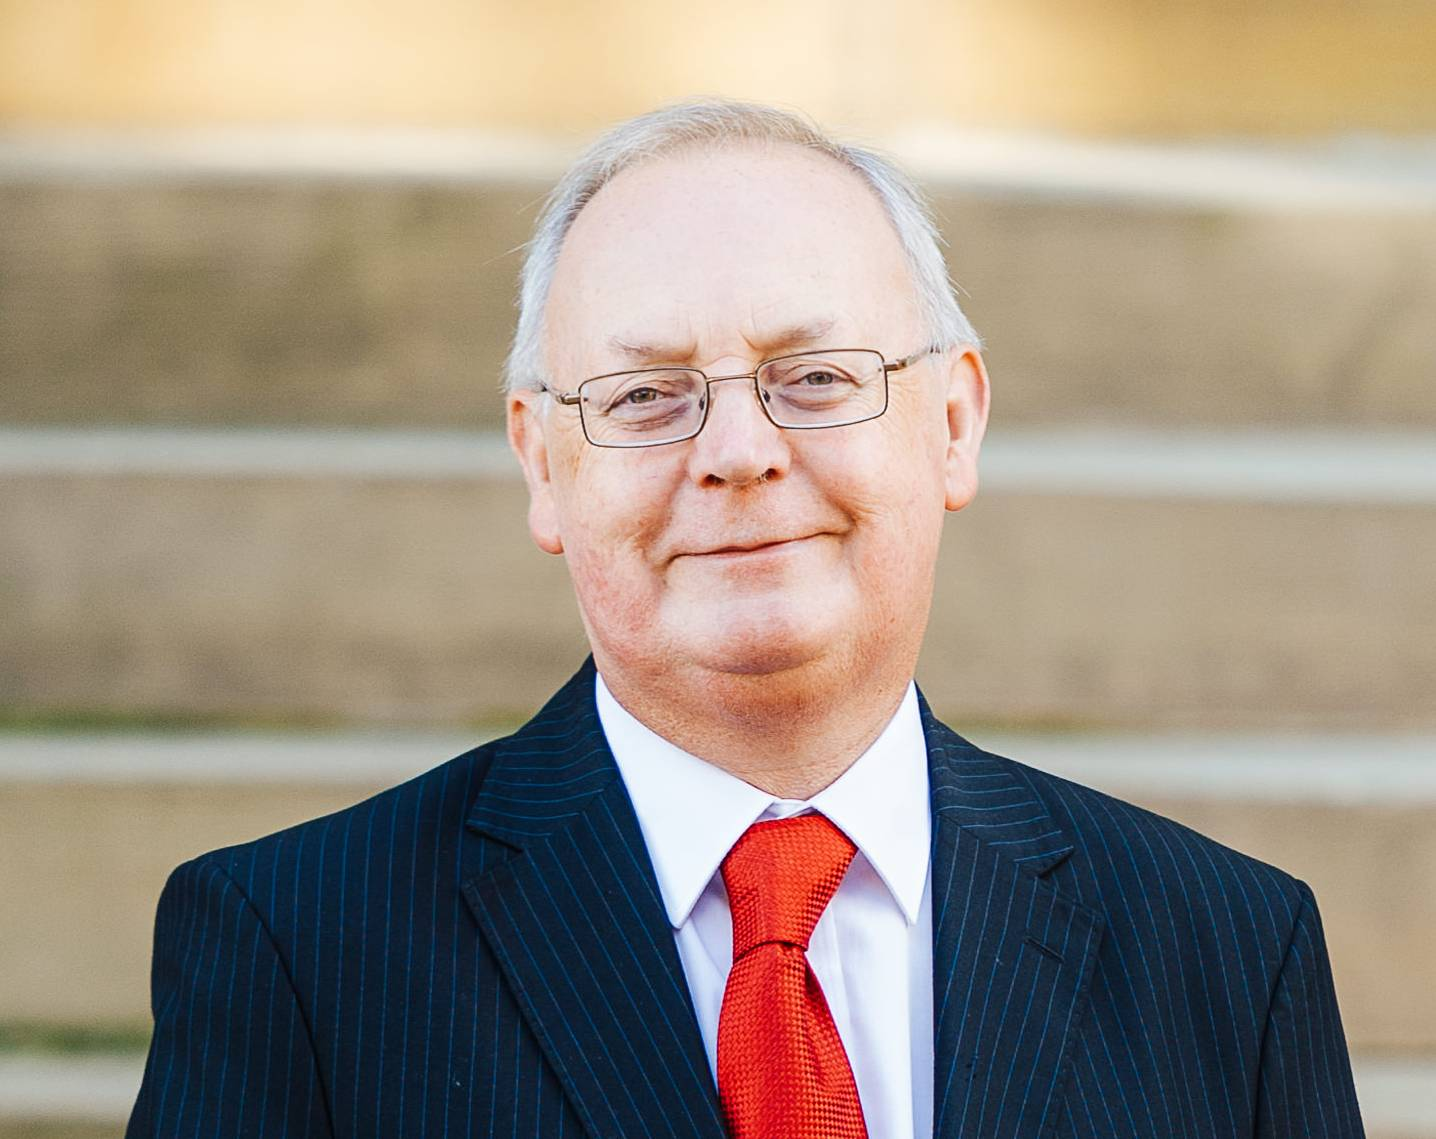 Cllr Tim Swift